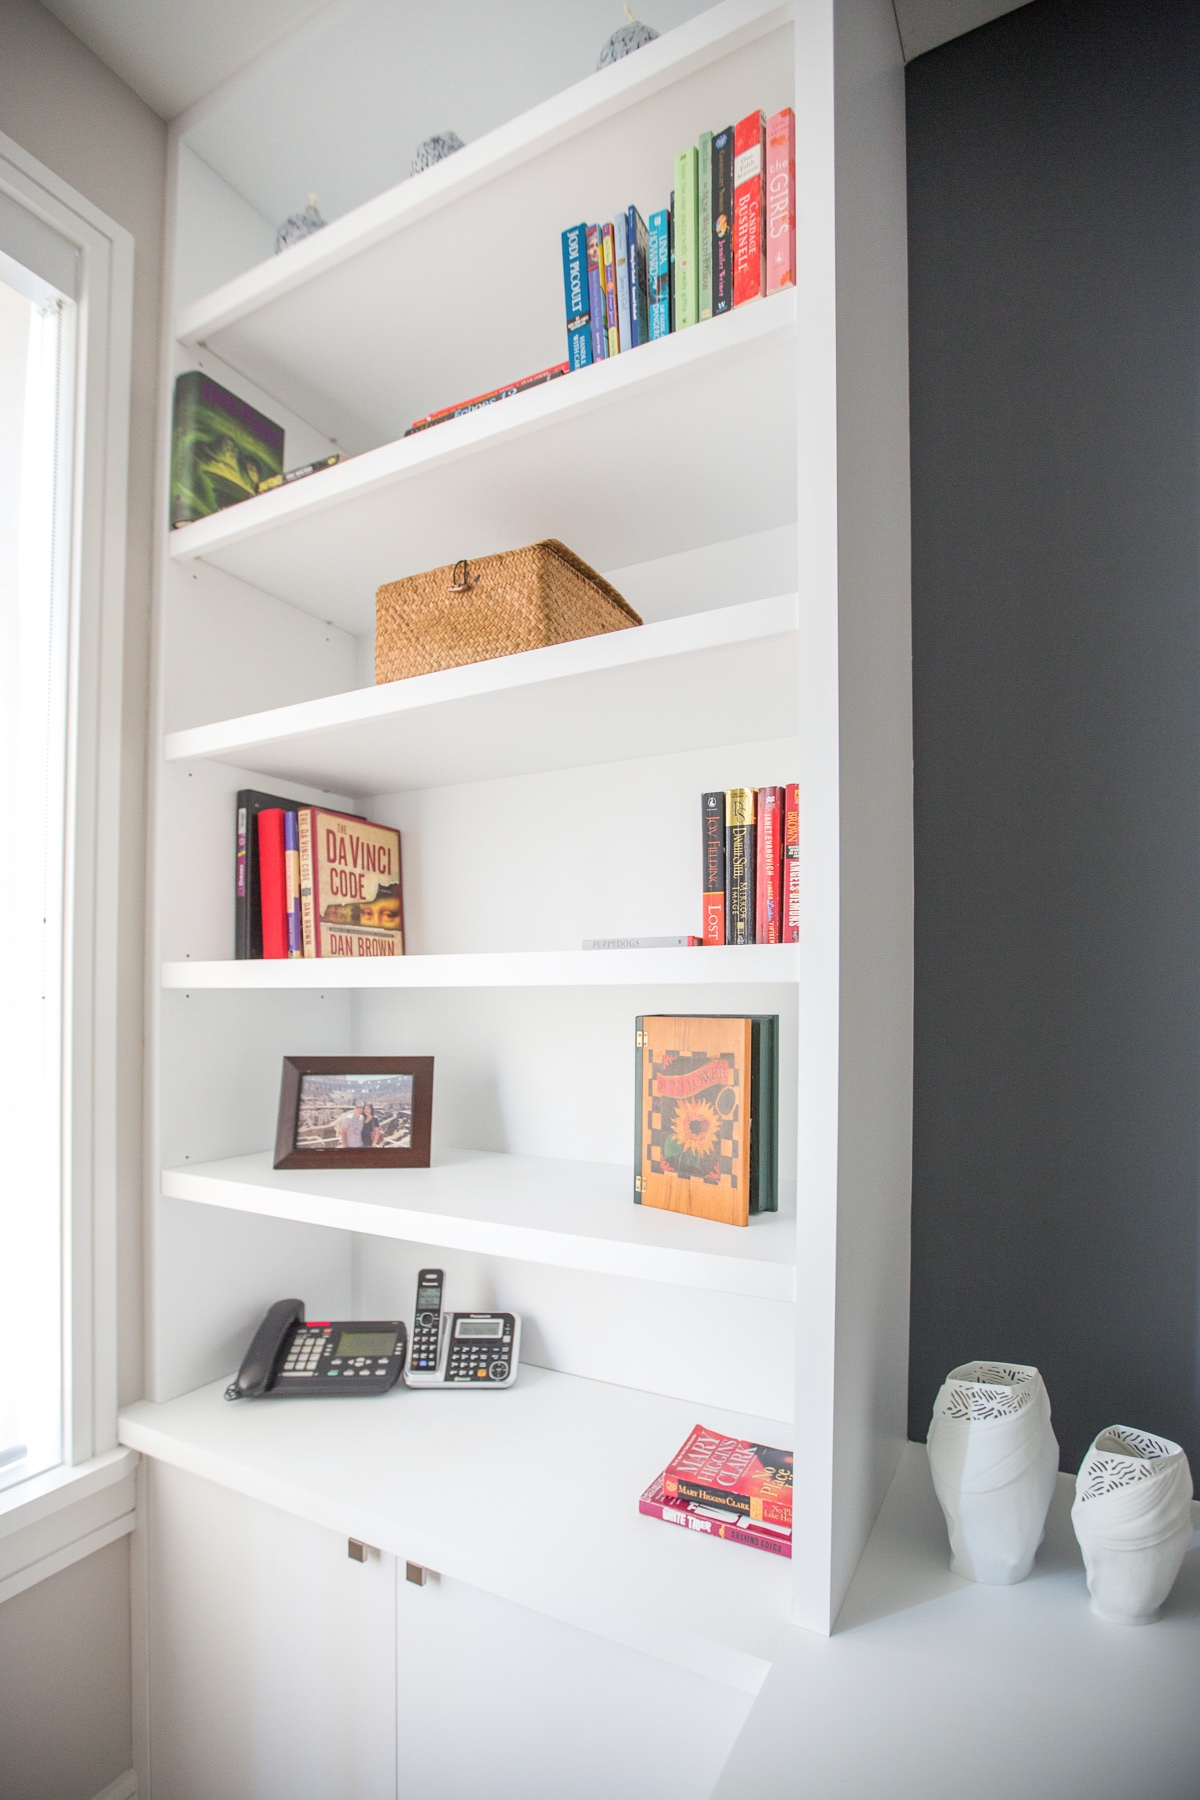 White wood cabinets and shelves